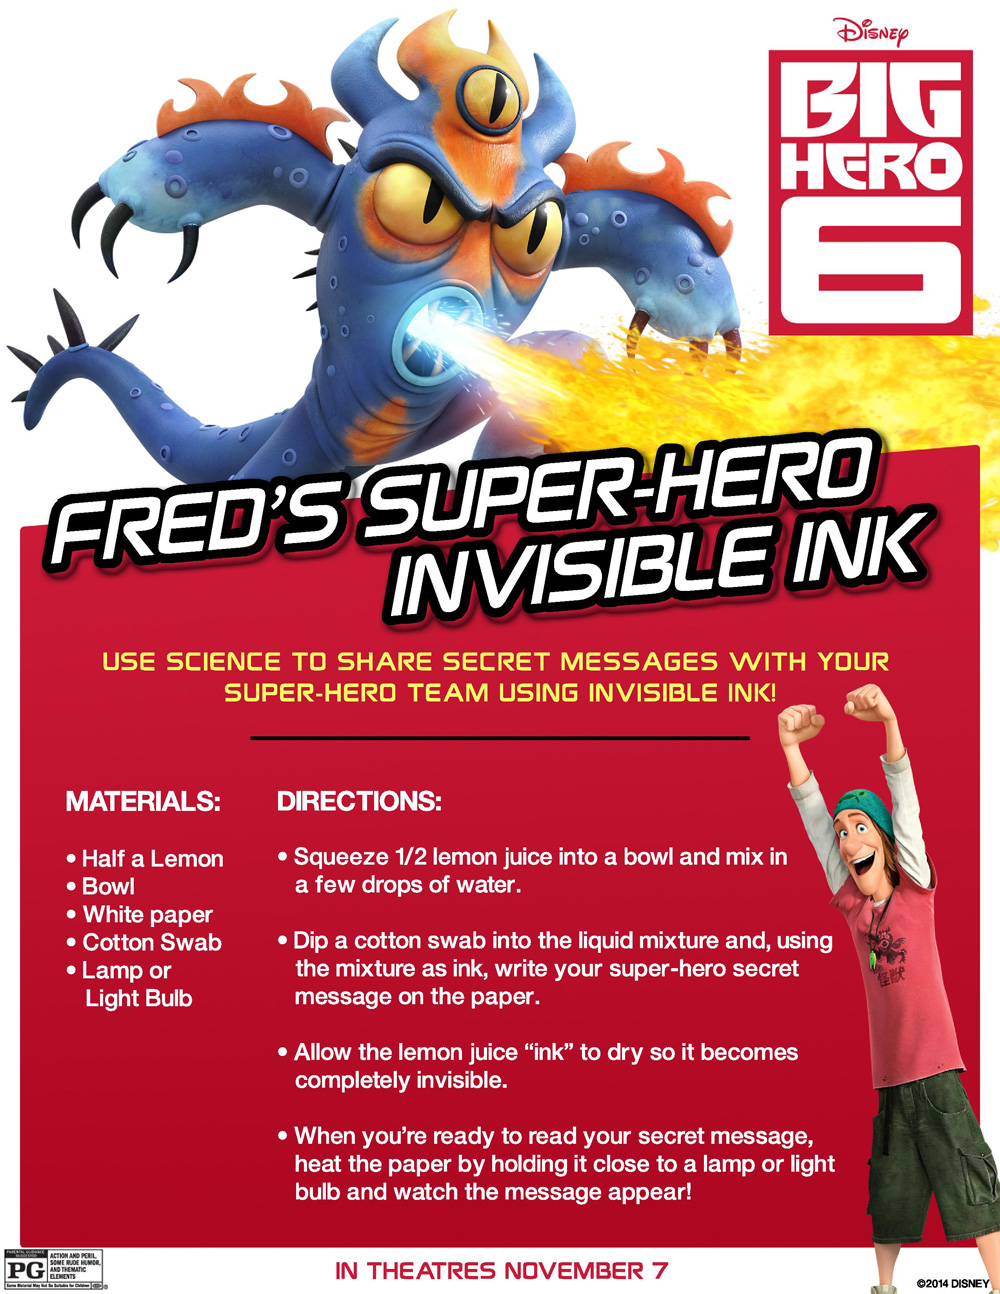 Big hero 6 fred s super hero invisible ink experiement activity sheet